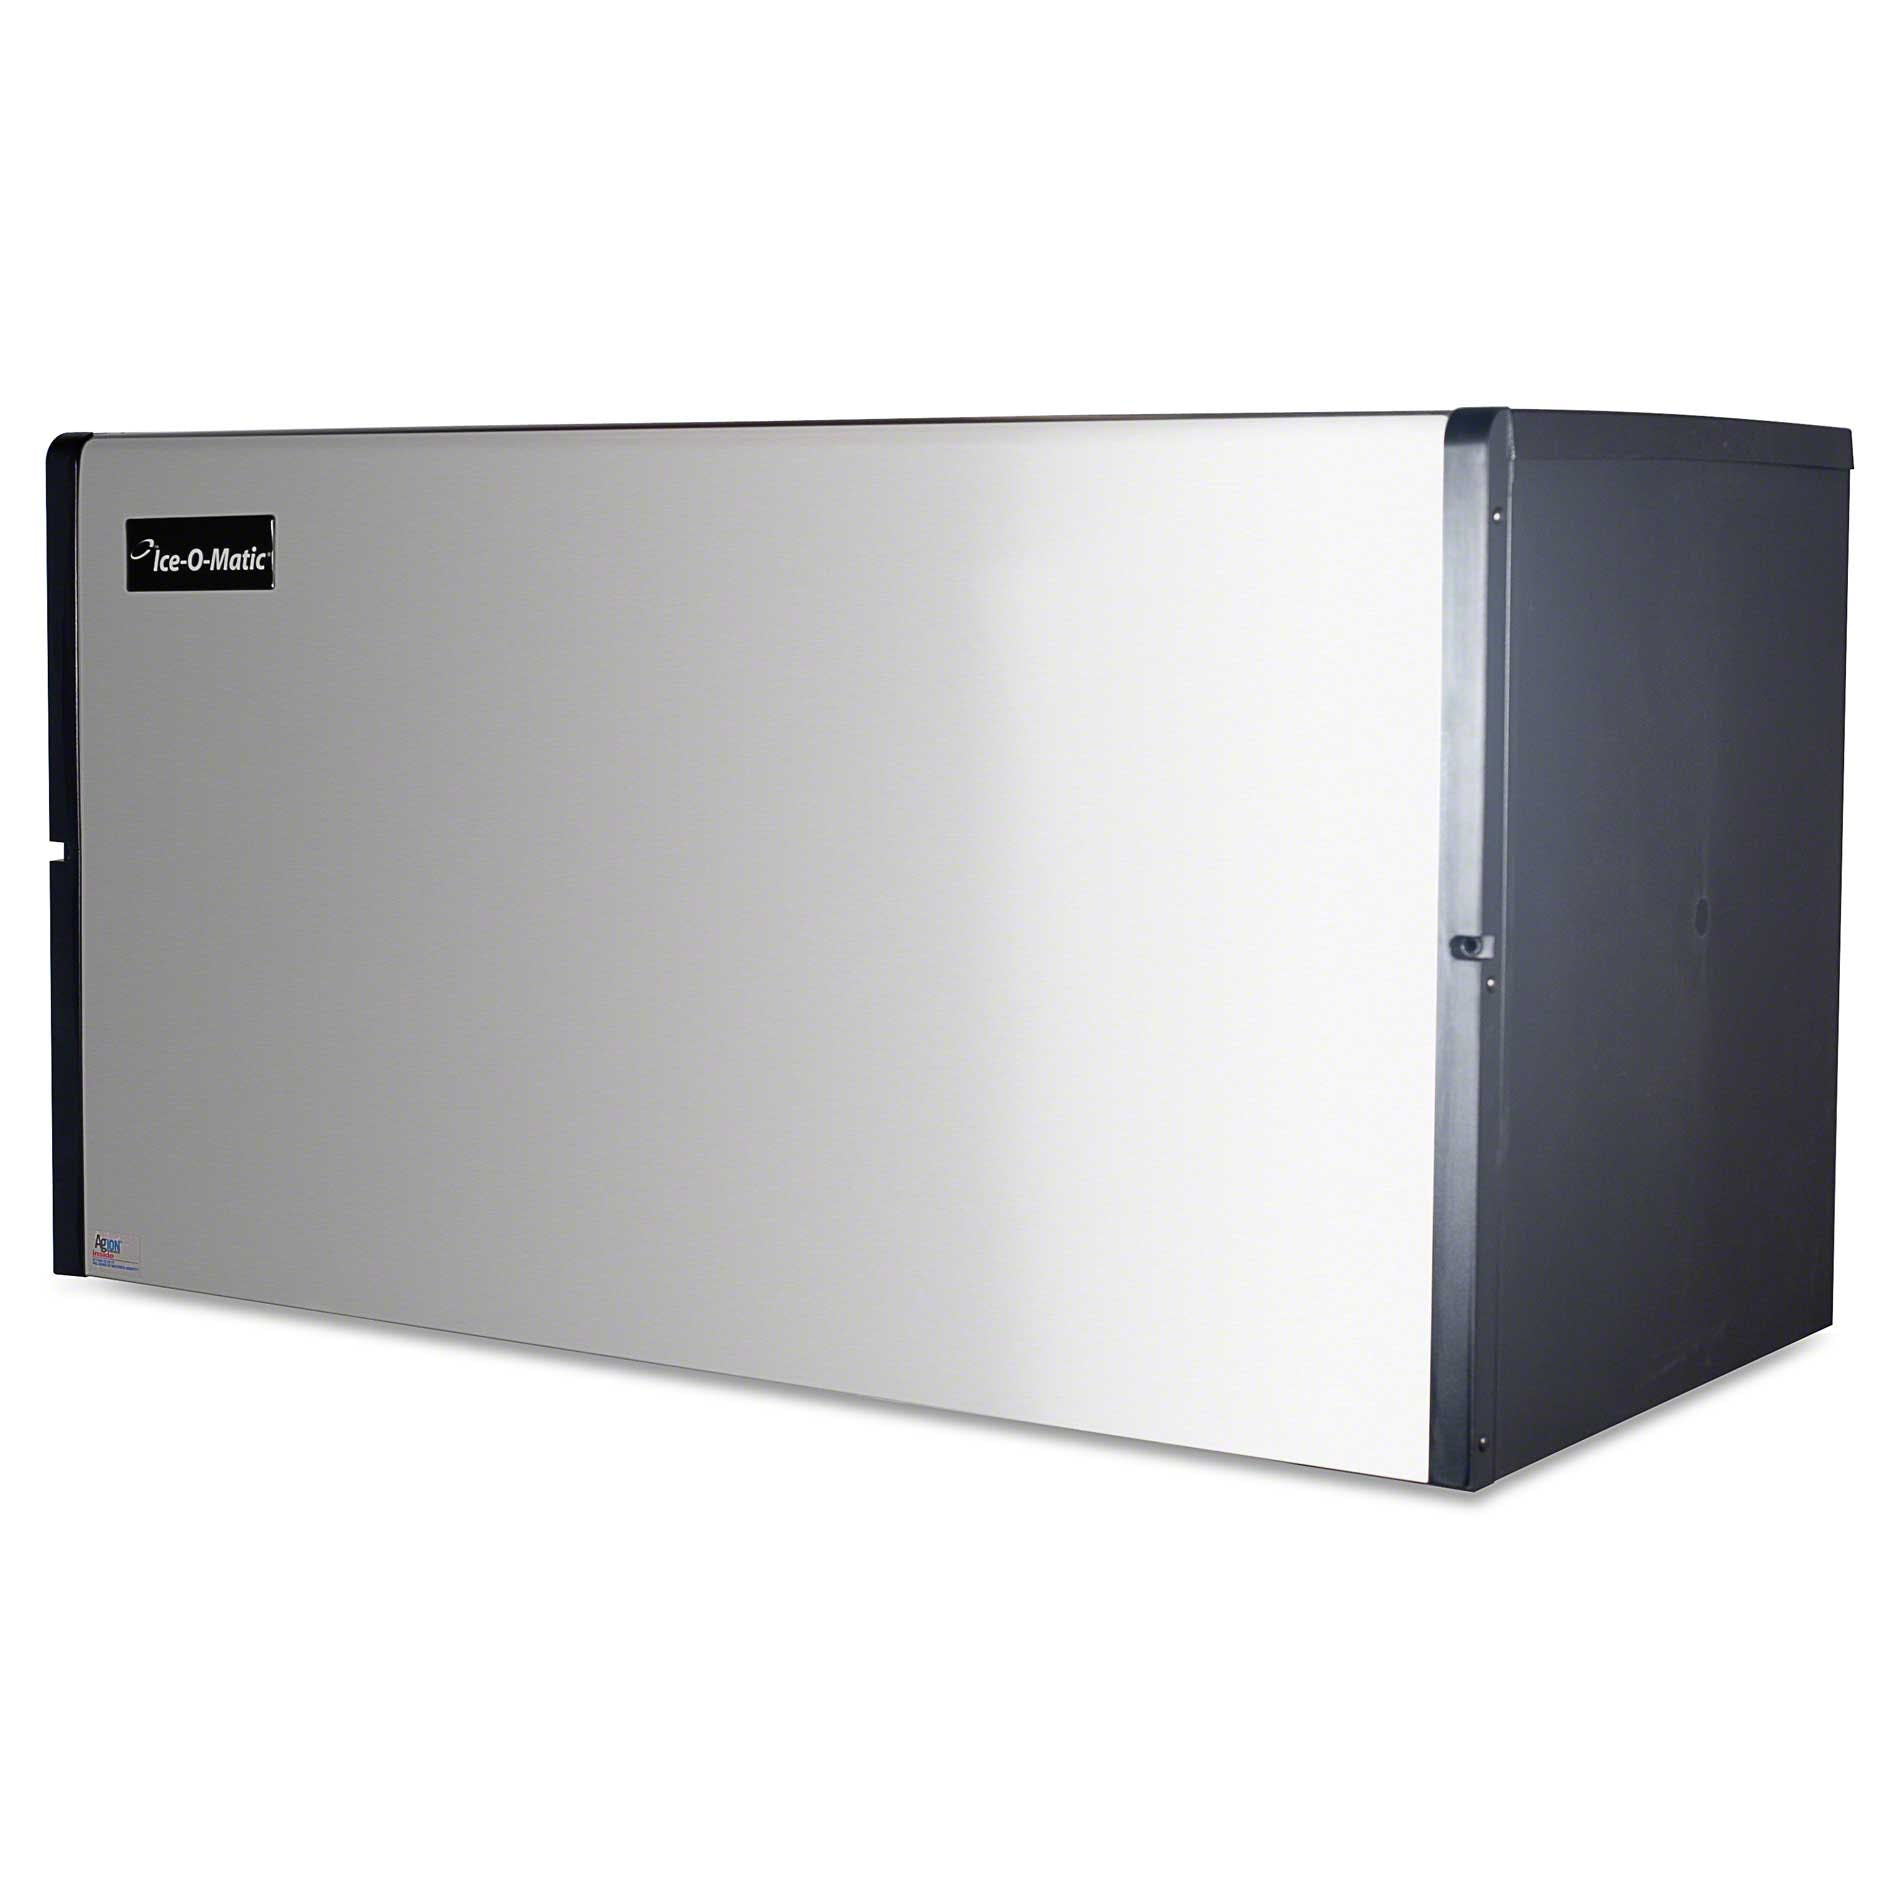 Ice-O-Matic - ICE1406HR 1391 lb Half Cube Ice Machine - sold by Food Service Warehouse